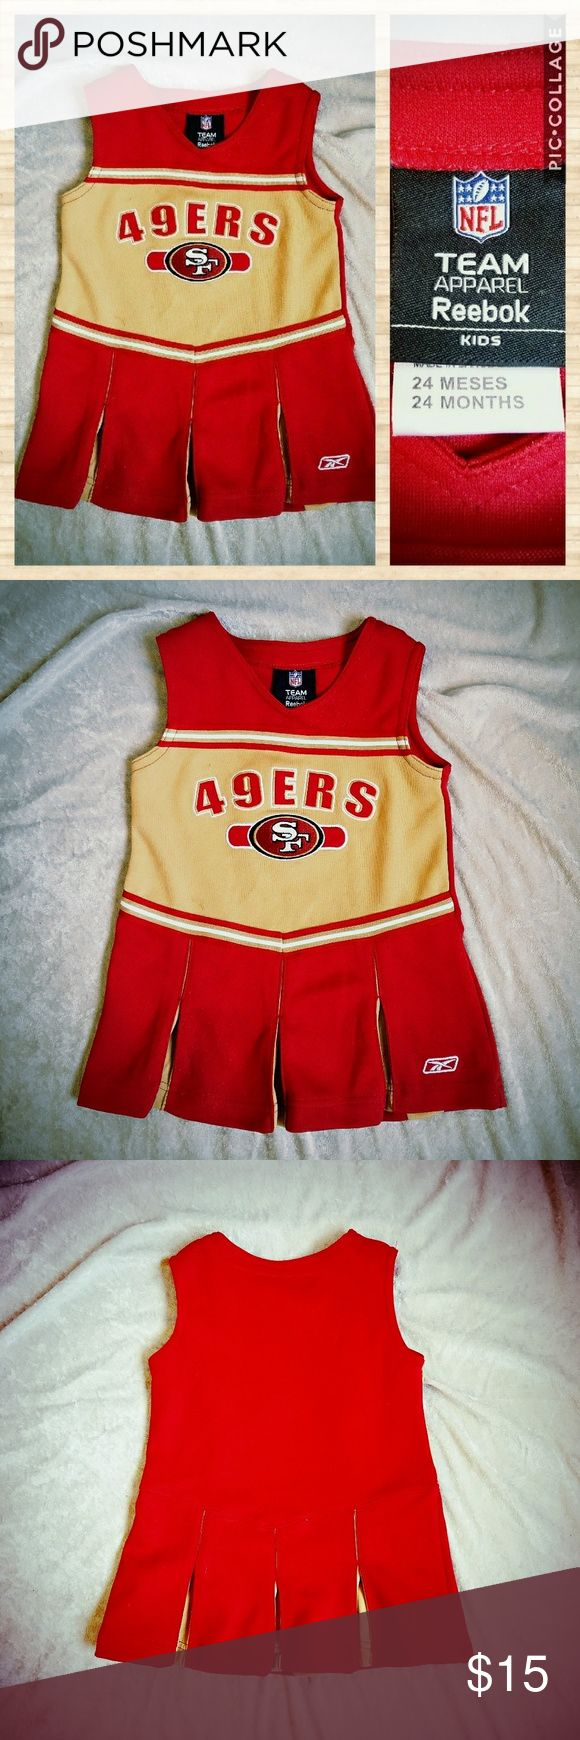 NFL 49ers cheerleader dress for baby girl, sz 24mo Adorable cheerleader-style dress for baby/toddler, perfect for your littlest 49ers fan! Used but in good condition. Closeup photos show two tiny stains on the front and loose thread at the waist on back. An easy, one-minute patch-up with needle and red thread.  This design is retired and no longer available for sale anywhere! 100% knit polyester, sport jersey material.  I believe this dress originally included matching bloomers; price is…